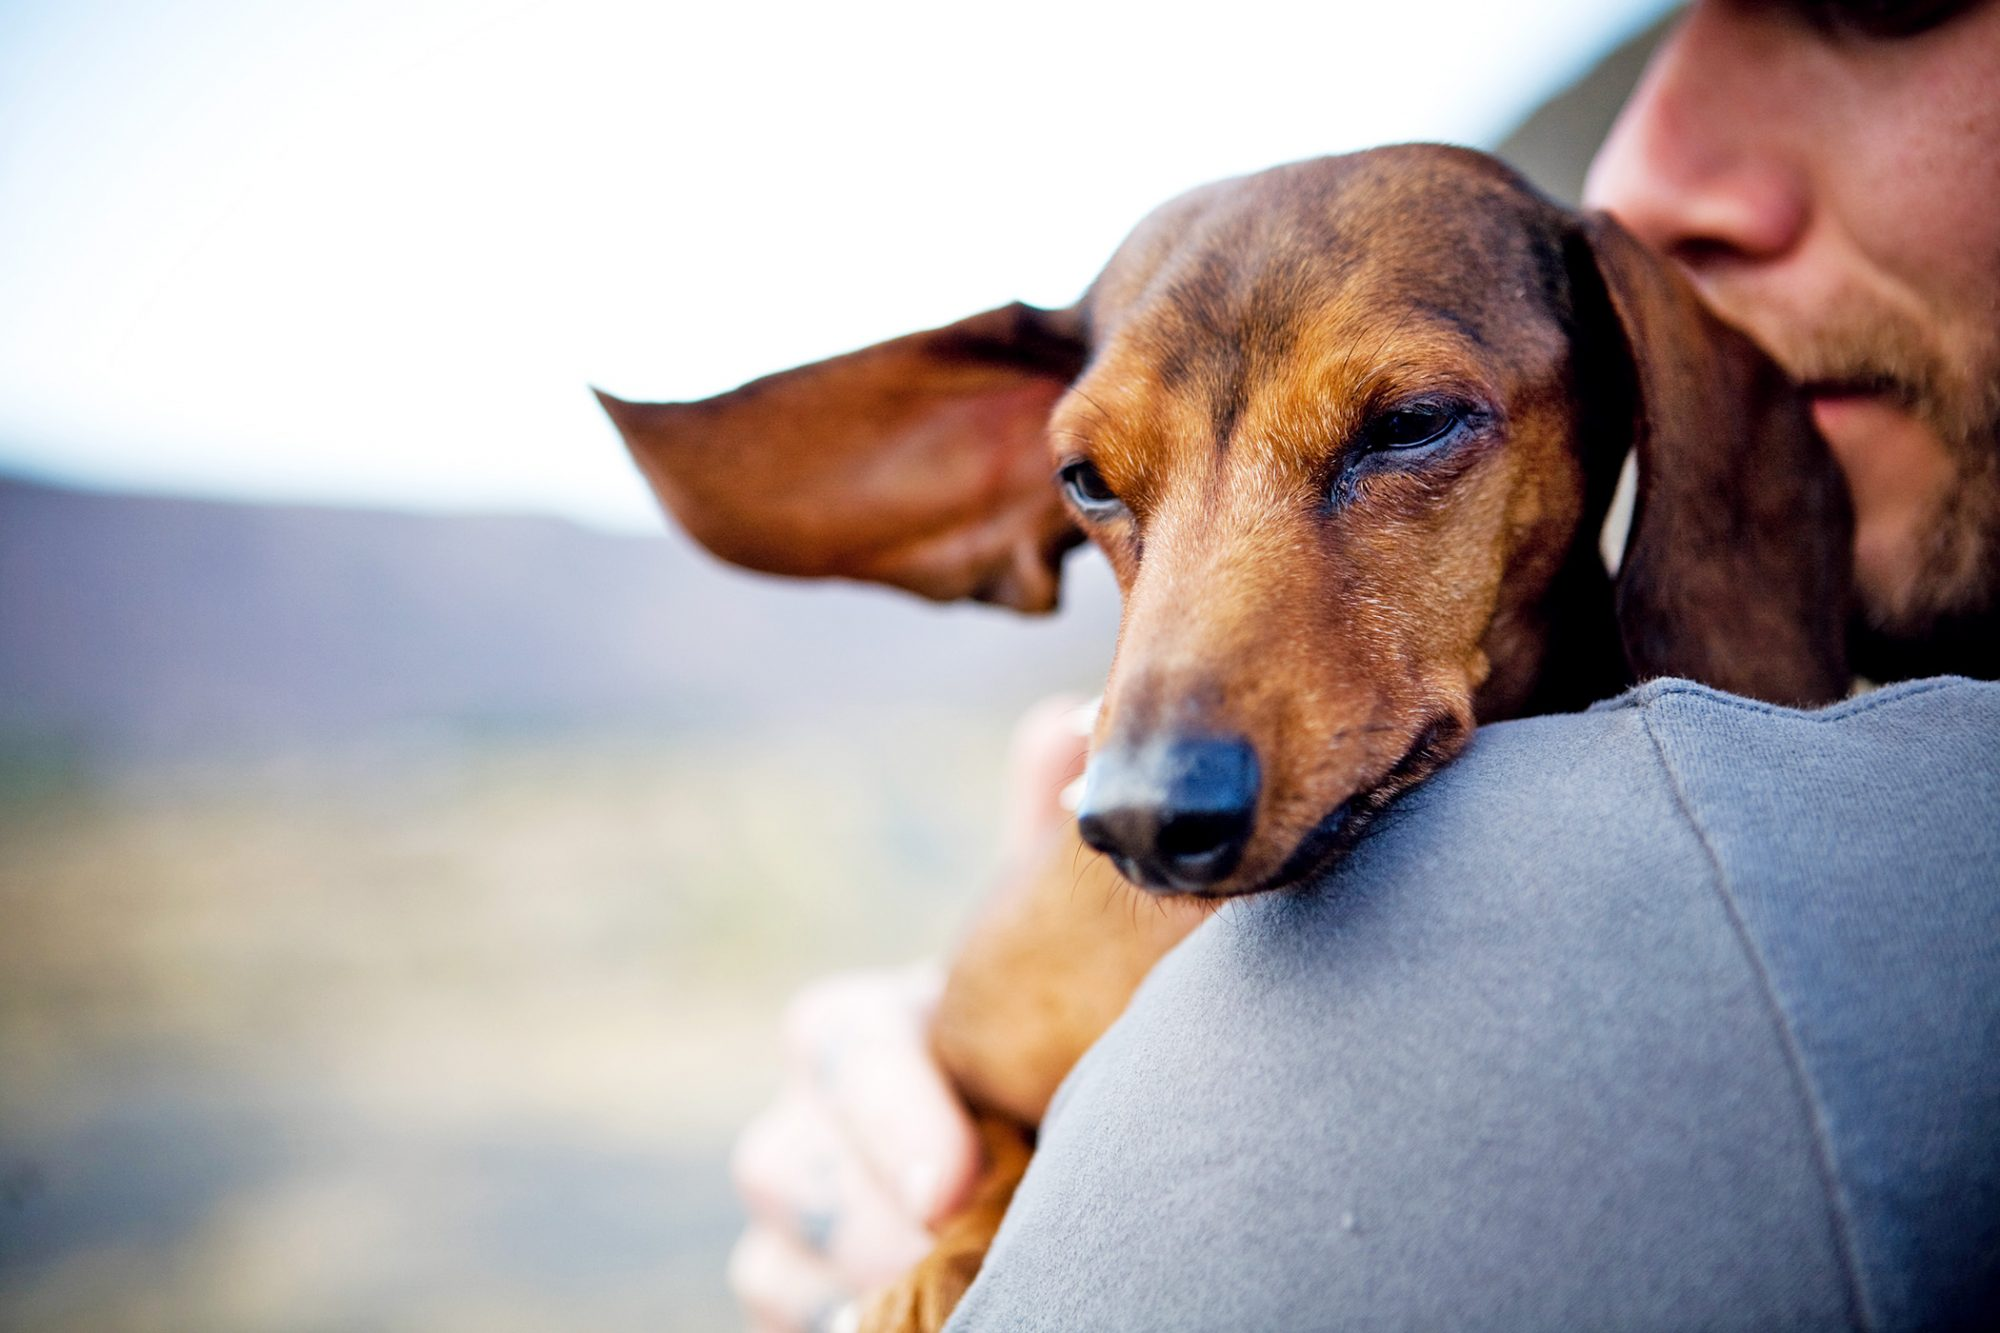 Man holds dachshund and cuddles them against his shoulder